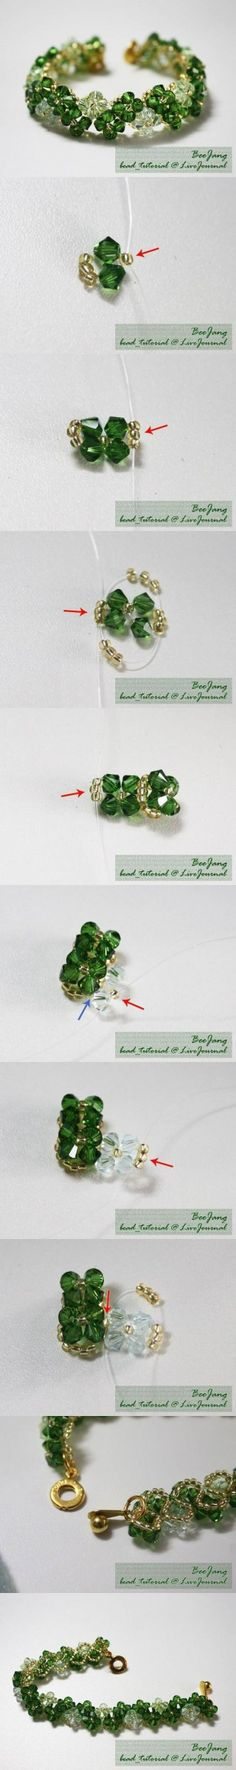 DIY Transparent Beads Bracelet DIY Projects